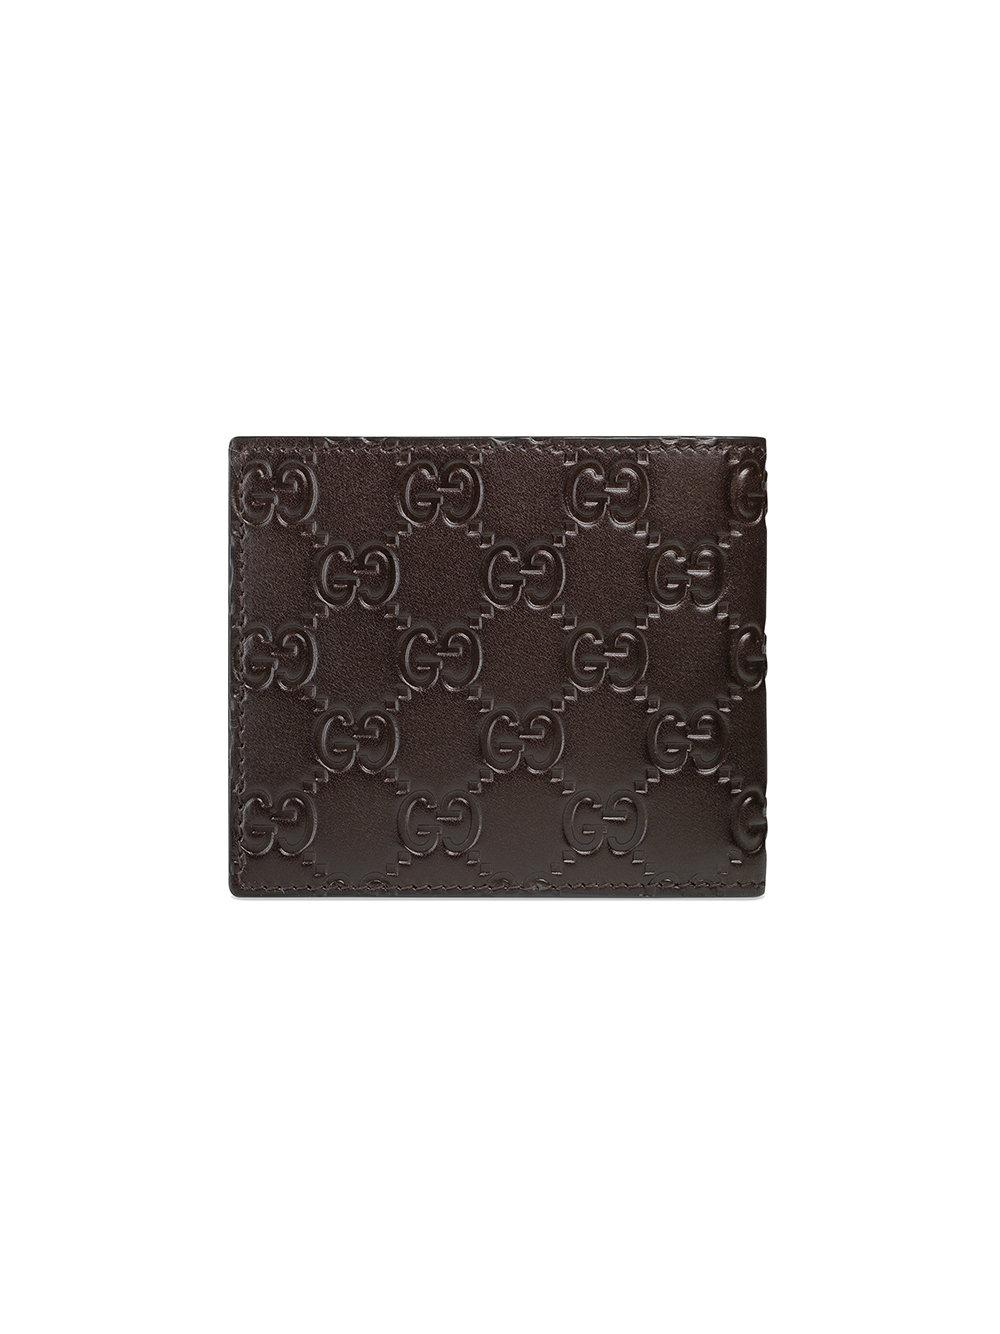 abfc7c4a5ab423 Lyst - Gucci Signature Wallet in Brown for Men